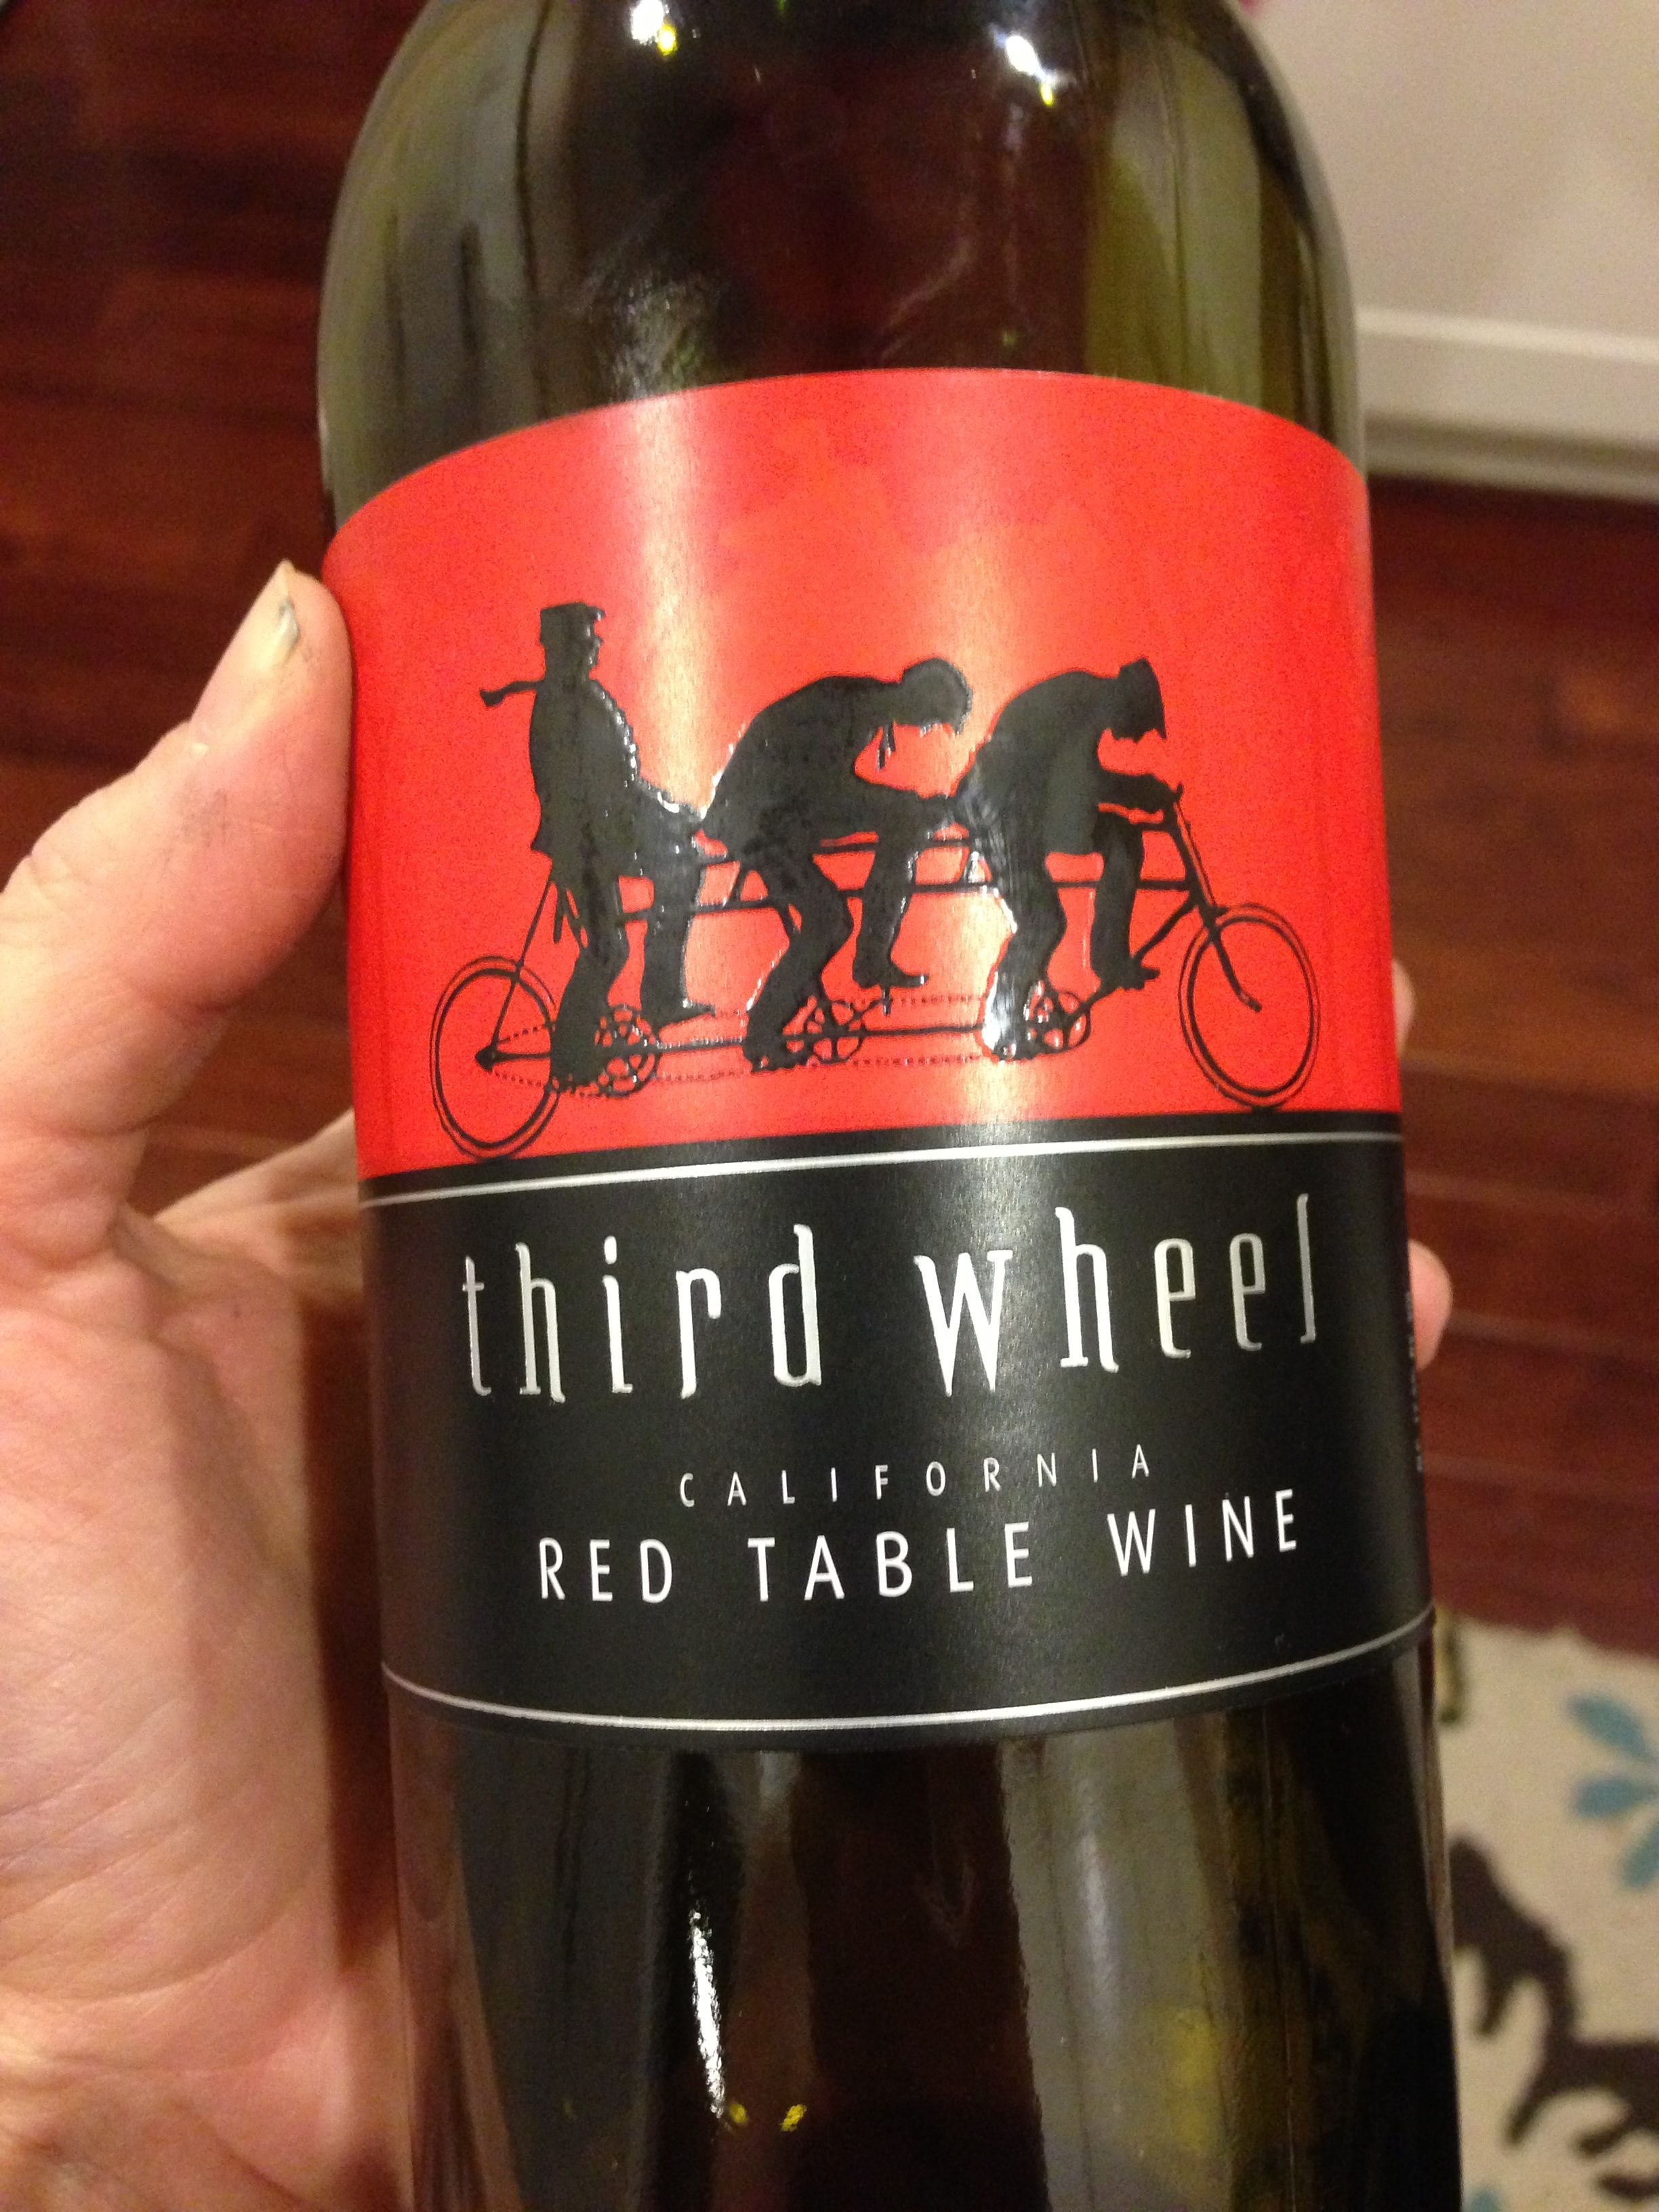 My New Favorite Red Blend Third Wheel 10 At Total Wine Favorite Wine Wine Bottle Total Wine